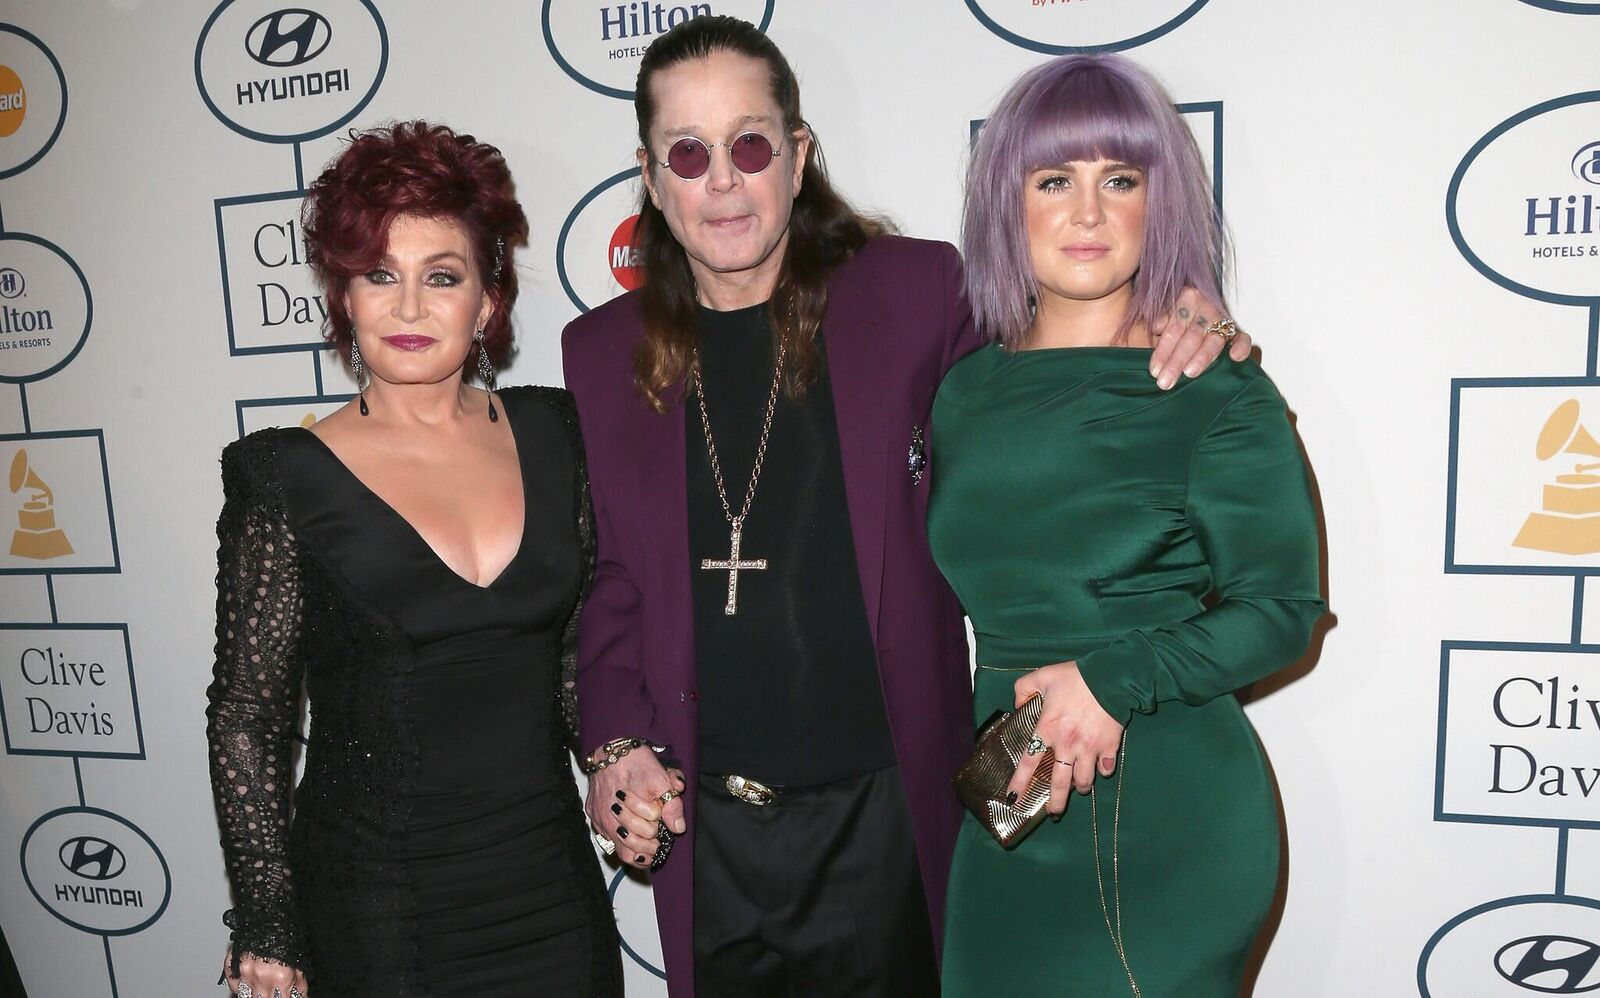 haron Osbourne, Kelly Osbourne, and Ozzy Osbourne attend the 56th annual GRAMMY Awards Pre-GRAMMY Gala on January 25, 2014. | Source: Getty Images